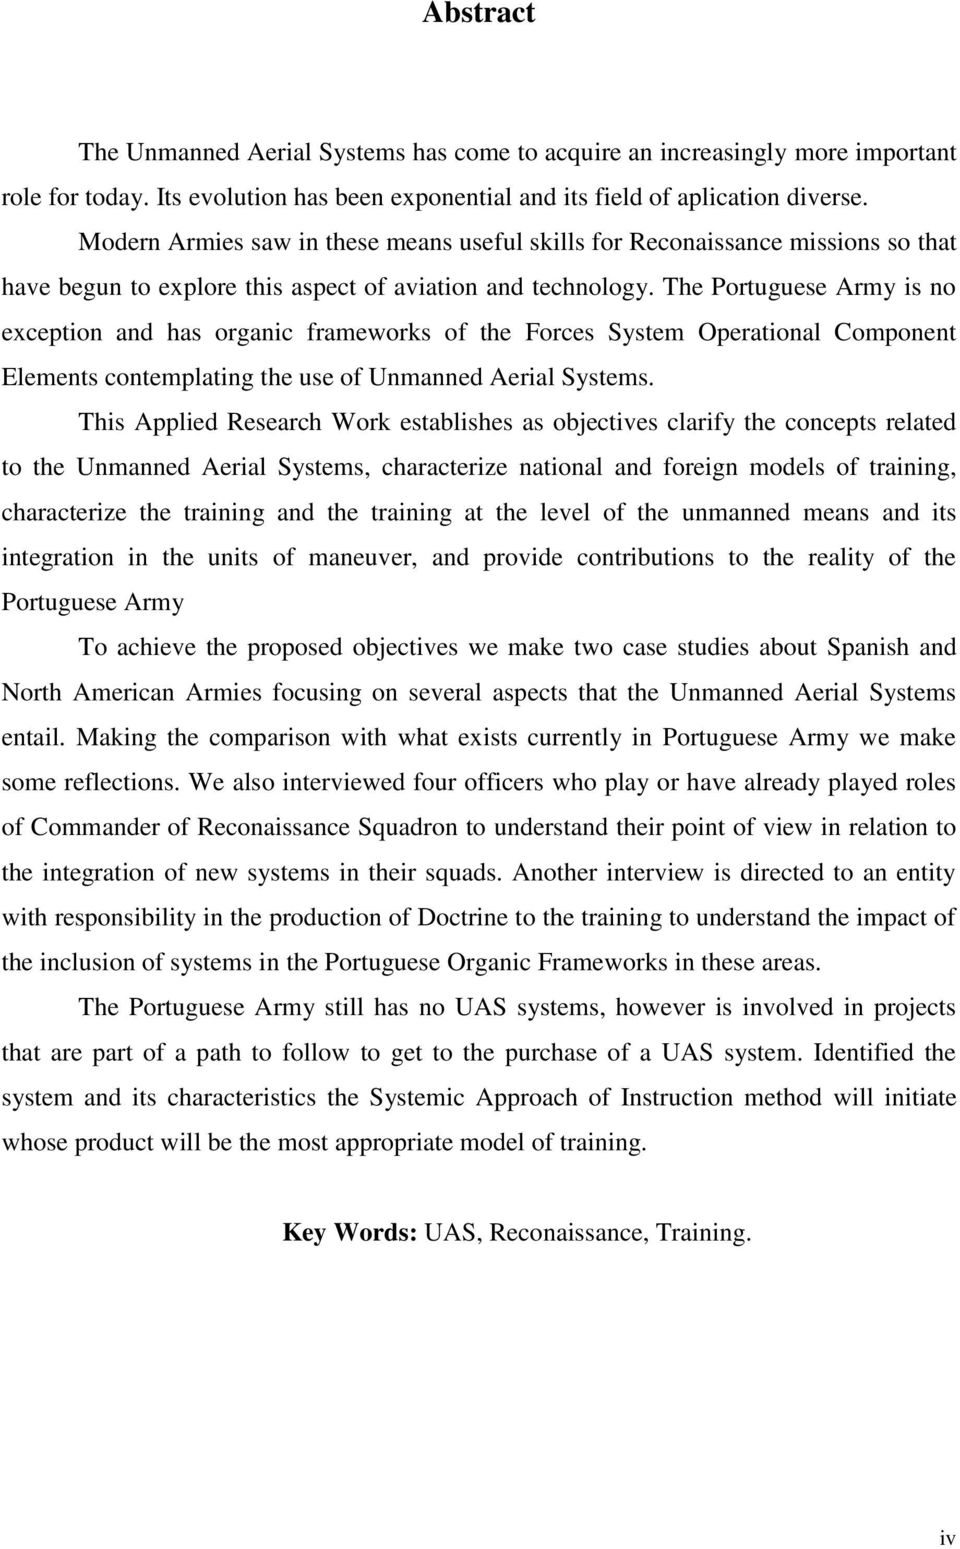 The Portuguese Army is no exception and has organic frameworks of the Forces System Operational Component Elements contemplating the use of Unmanned Aerial Systems.